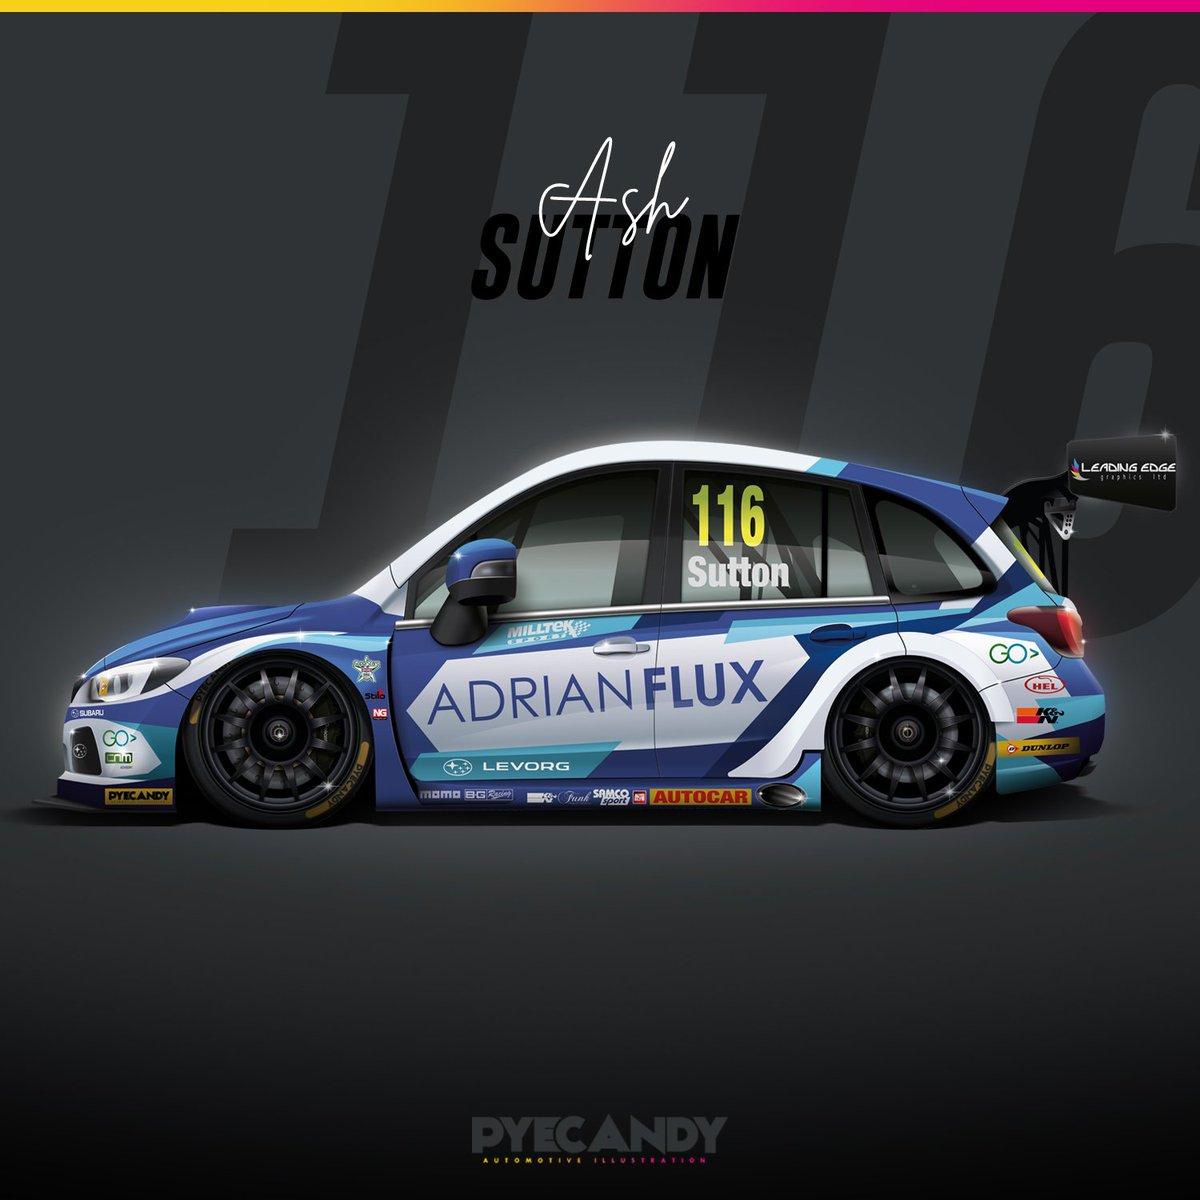 -Whilst chatting to Mal about his #PyeCandy work, we couldn't resist asking him to create a bespoke @ASuttonRacing @TeamBMRRacing work for us... see more at https://www.influx.co.uk/features/a-pye-for-design/?editions=true&utm_source=twitter&utm_medium=referral&utm_content=ashpic&utm_campaign=190619…